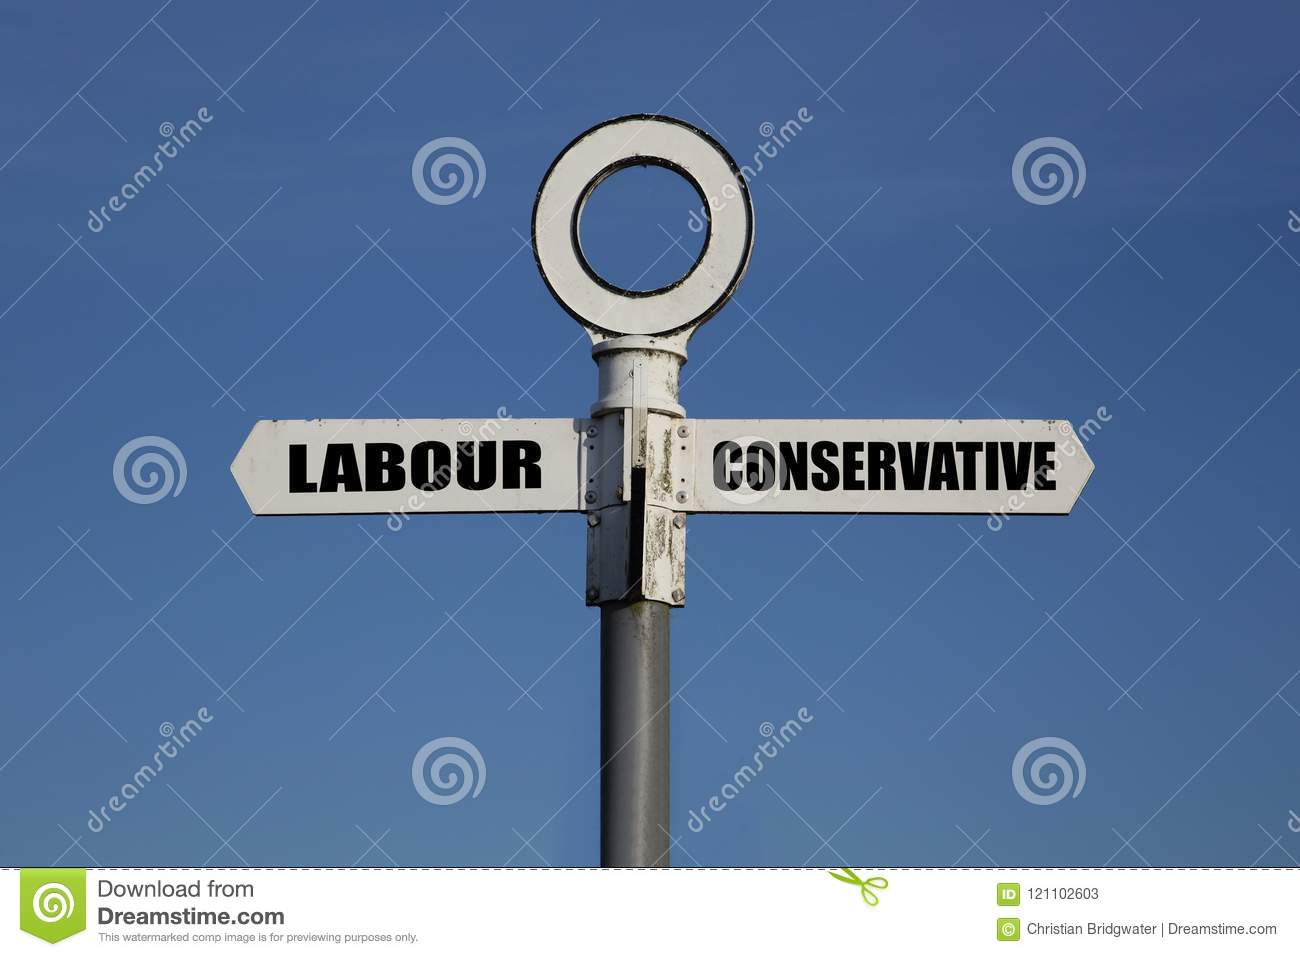 Old road sign with labour and conservative pointing in opposite directions